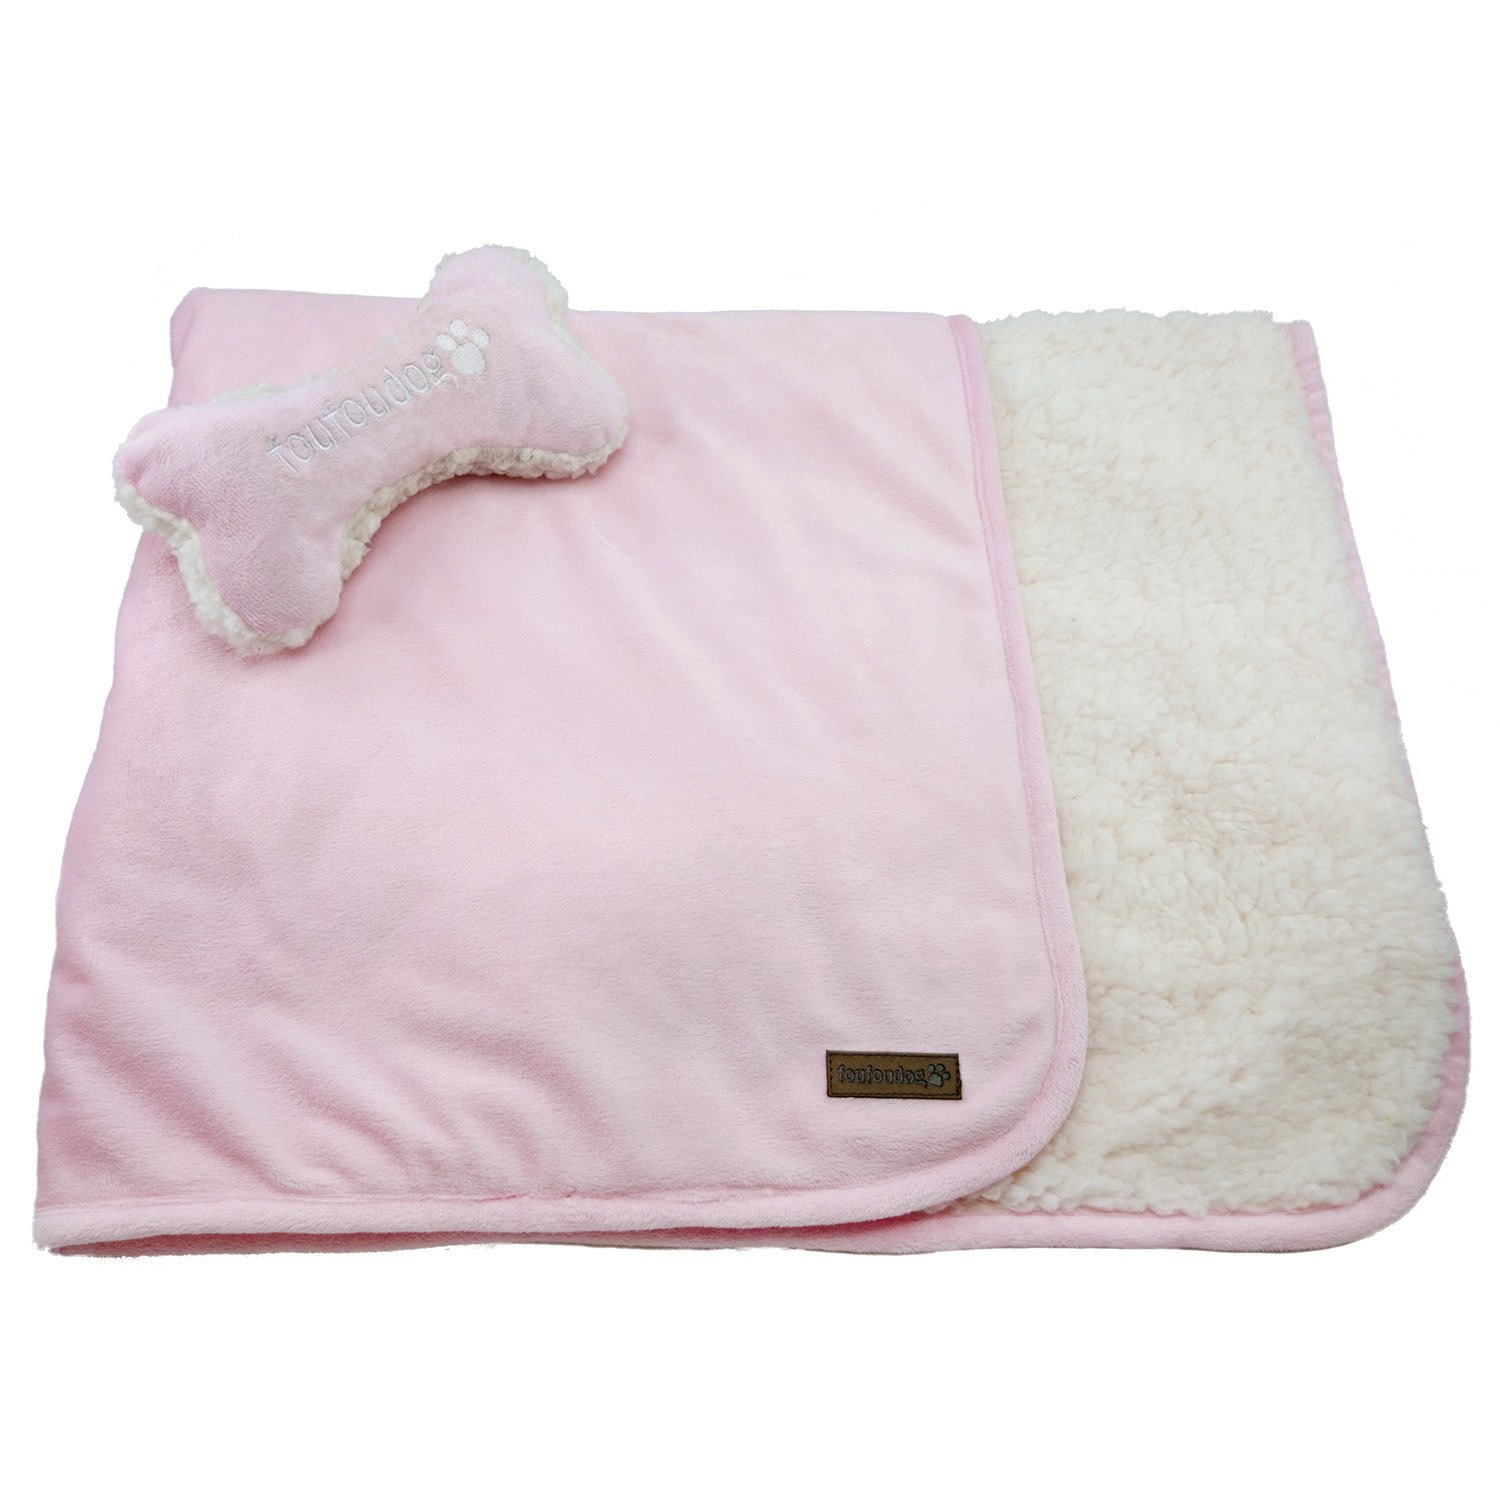 FouFou Dog Luxe Sherpa Puppy Blanket Set with Bone Pillow, Baby Pink